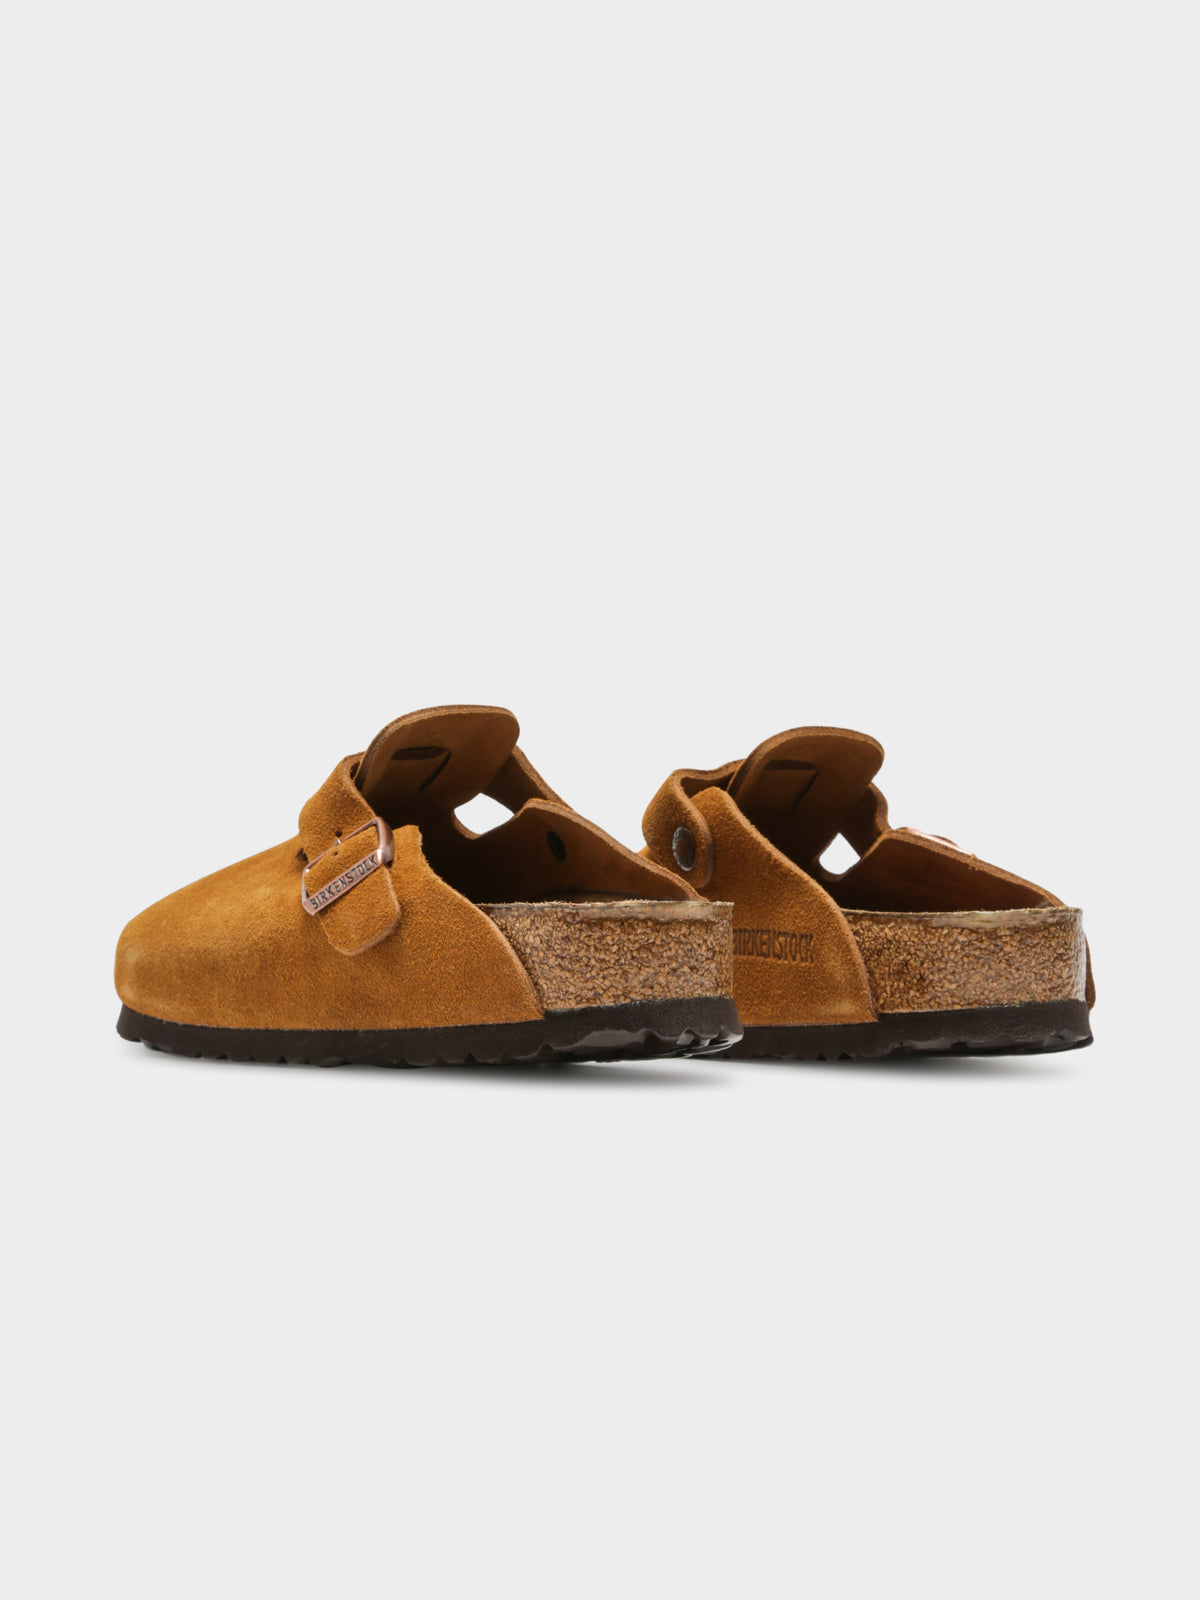 Unisex Boston Soft Footbed Slip-Ons in Mink Suede Leather